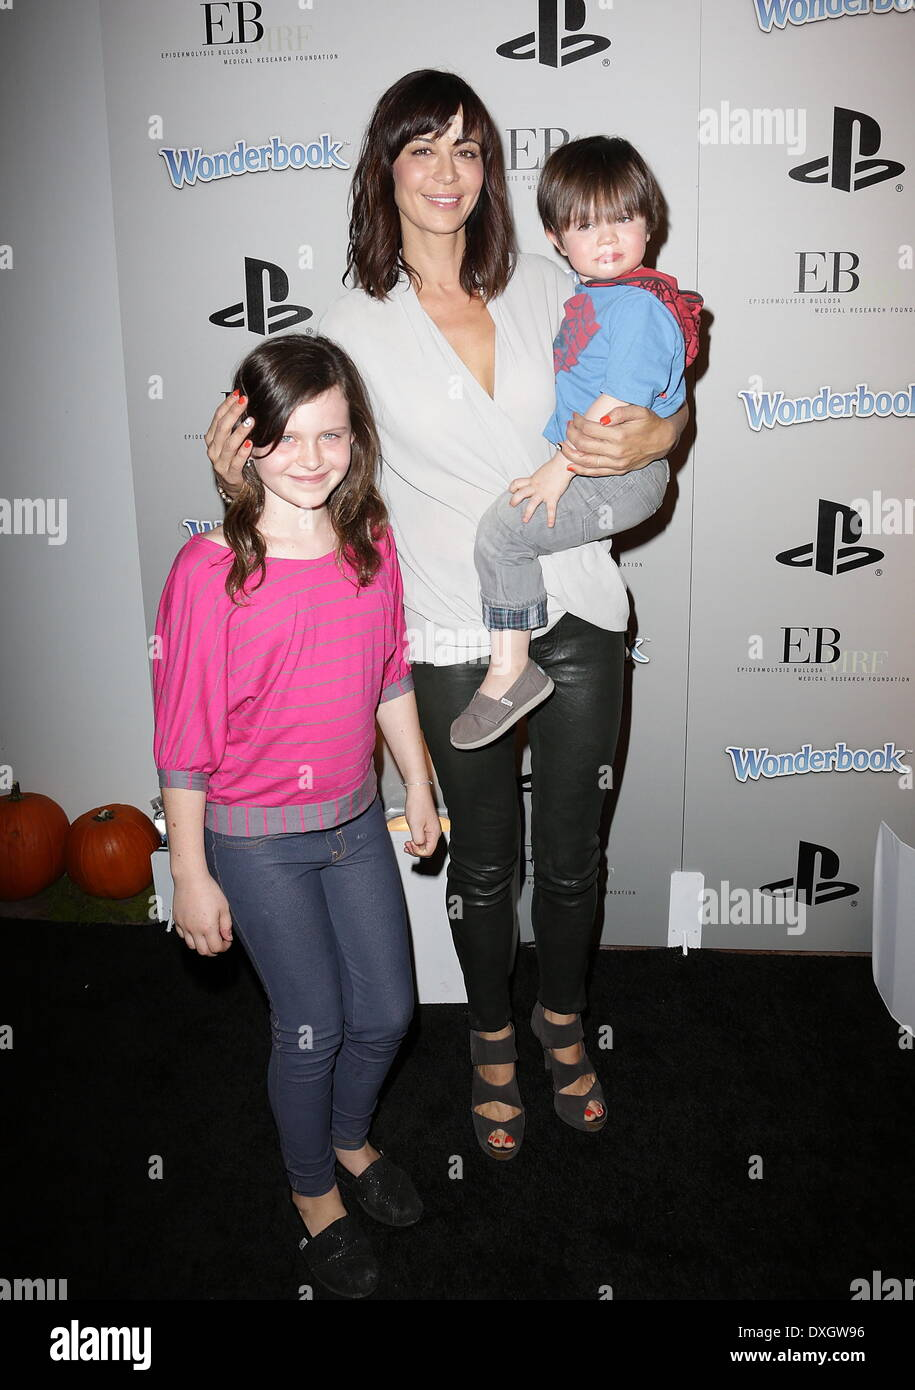 Catherine Bell And Gemma Beason Stock Photos & Catherine